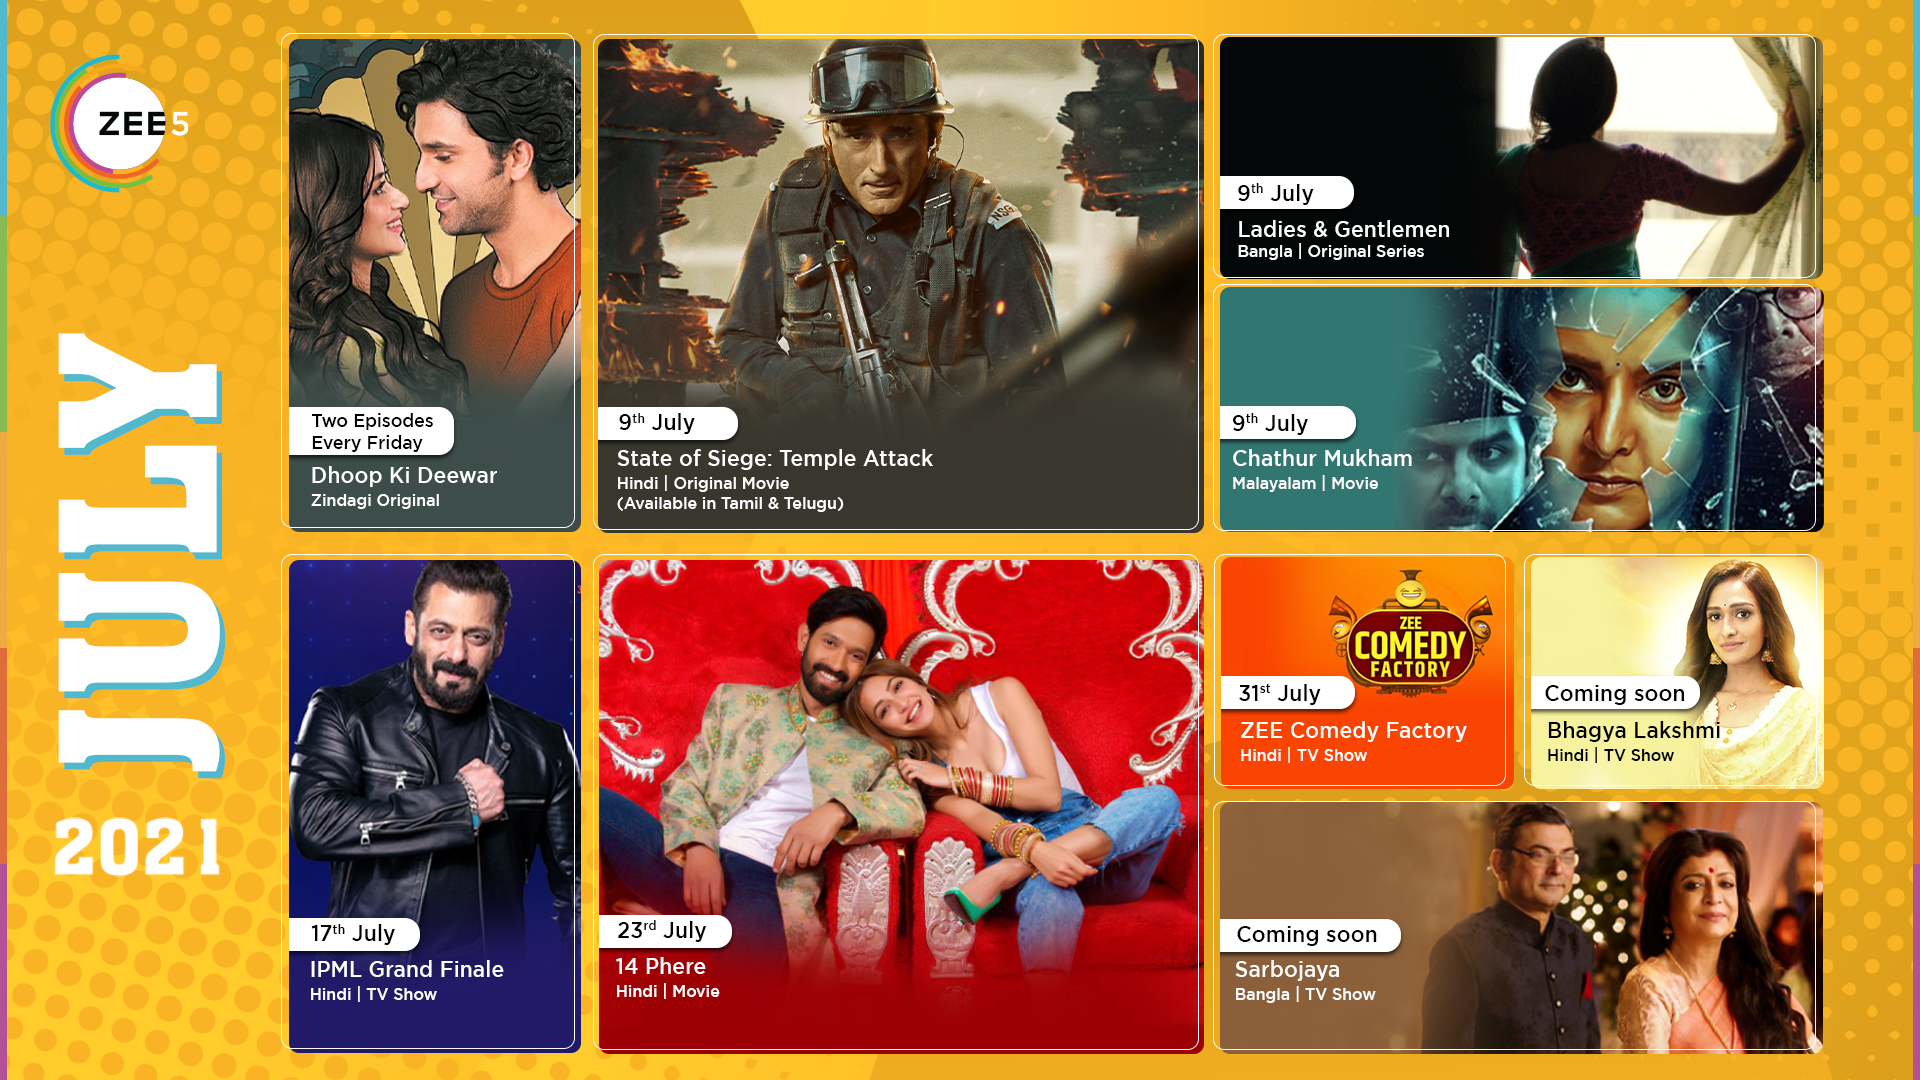 From Originals to TV shows, all that is streaming on ZEE5 Global this July